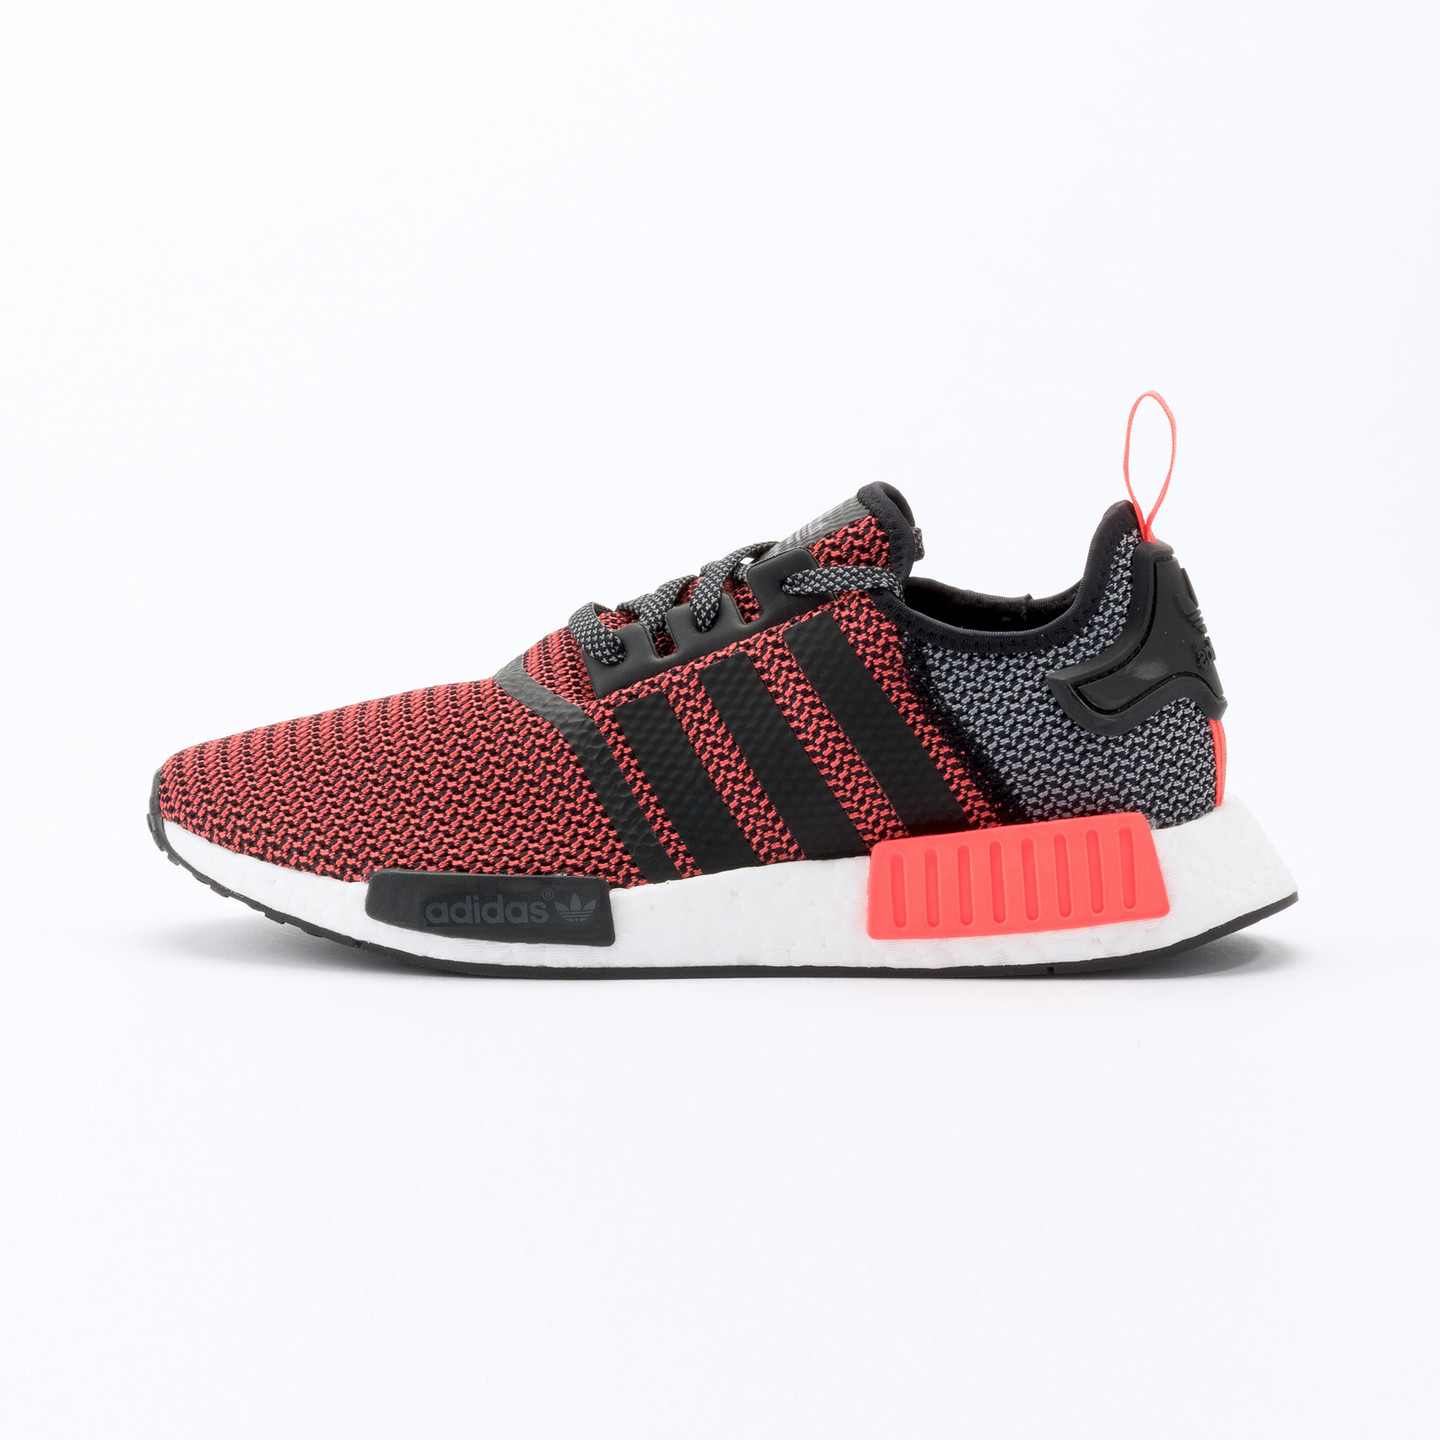 Adidas NMD R1 Runner Lush Red / Core Black S79158-44.66